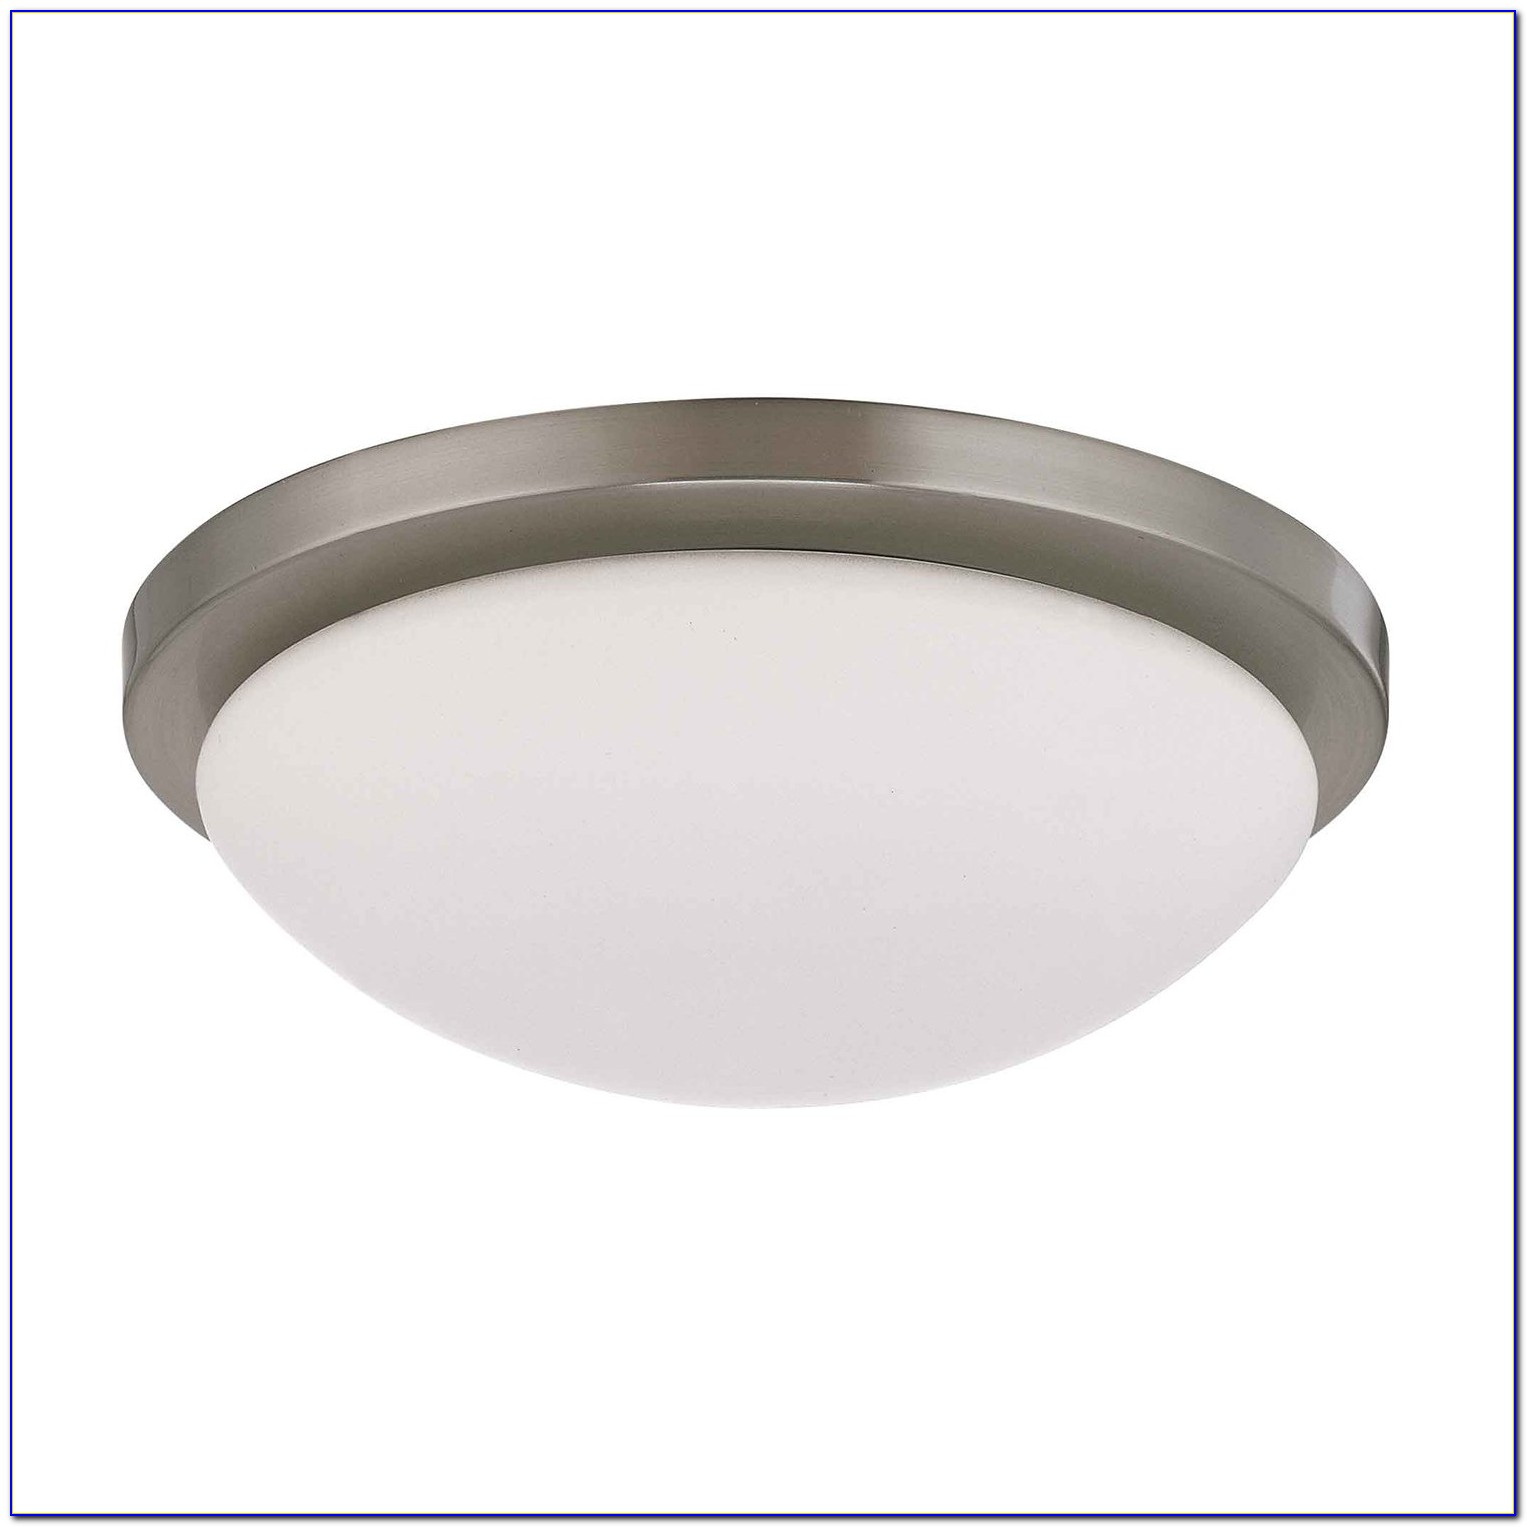 How To Install Fluorescent Flush Mount Ceiling Light